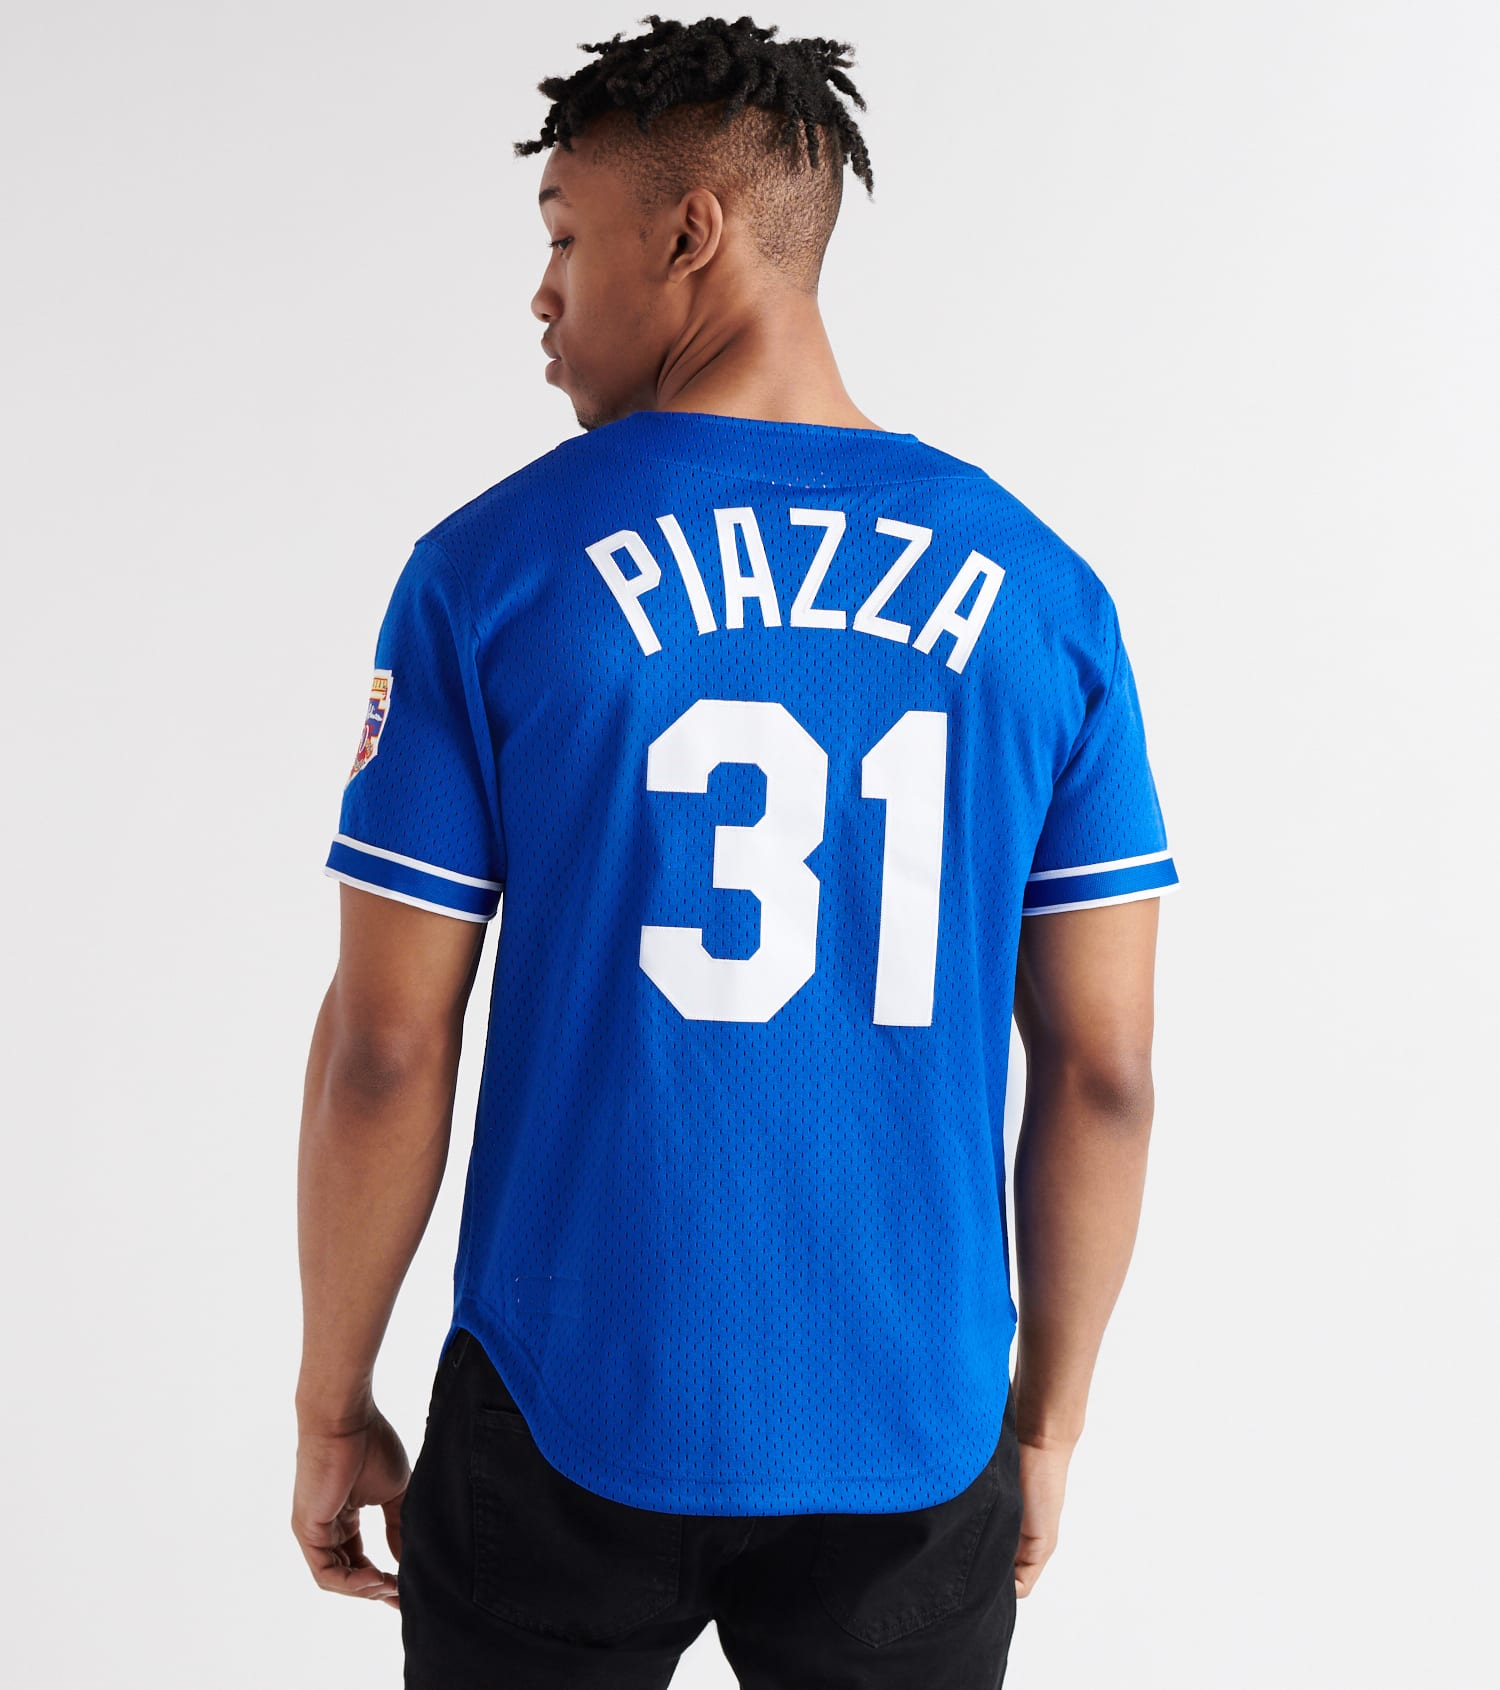 on sale 7e156 e5c1f Mike Piazza 1997 Dodgers BP Jersey